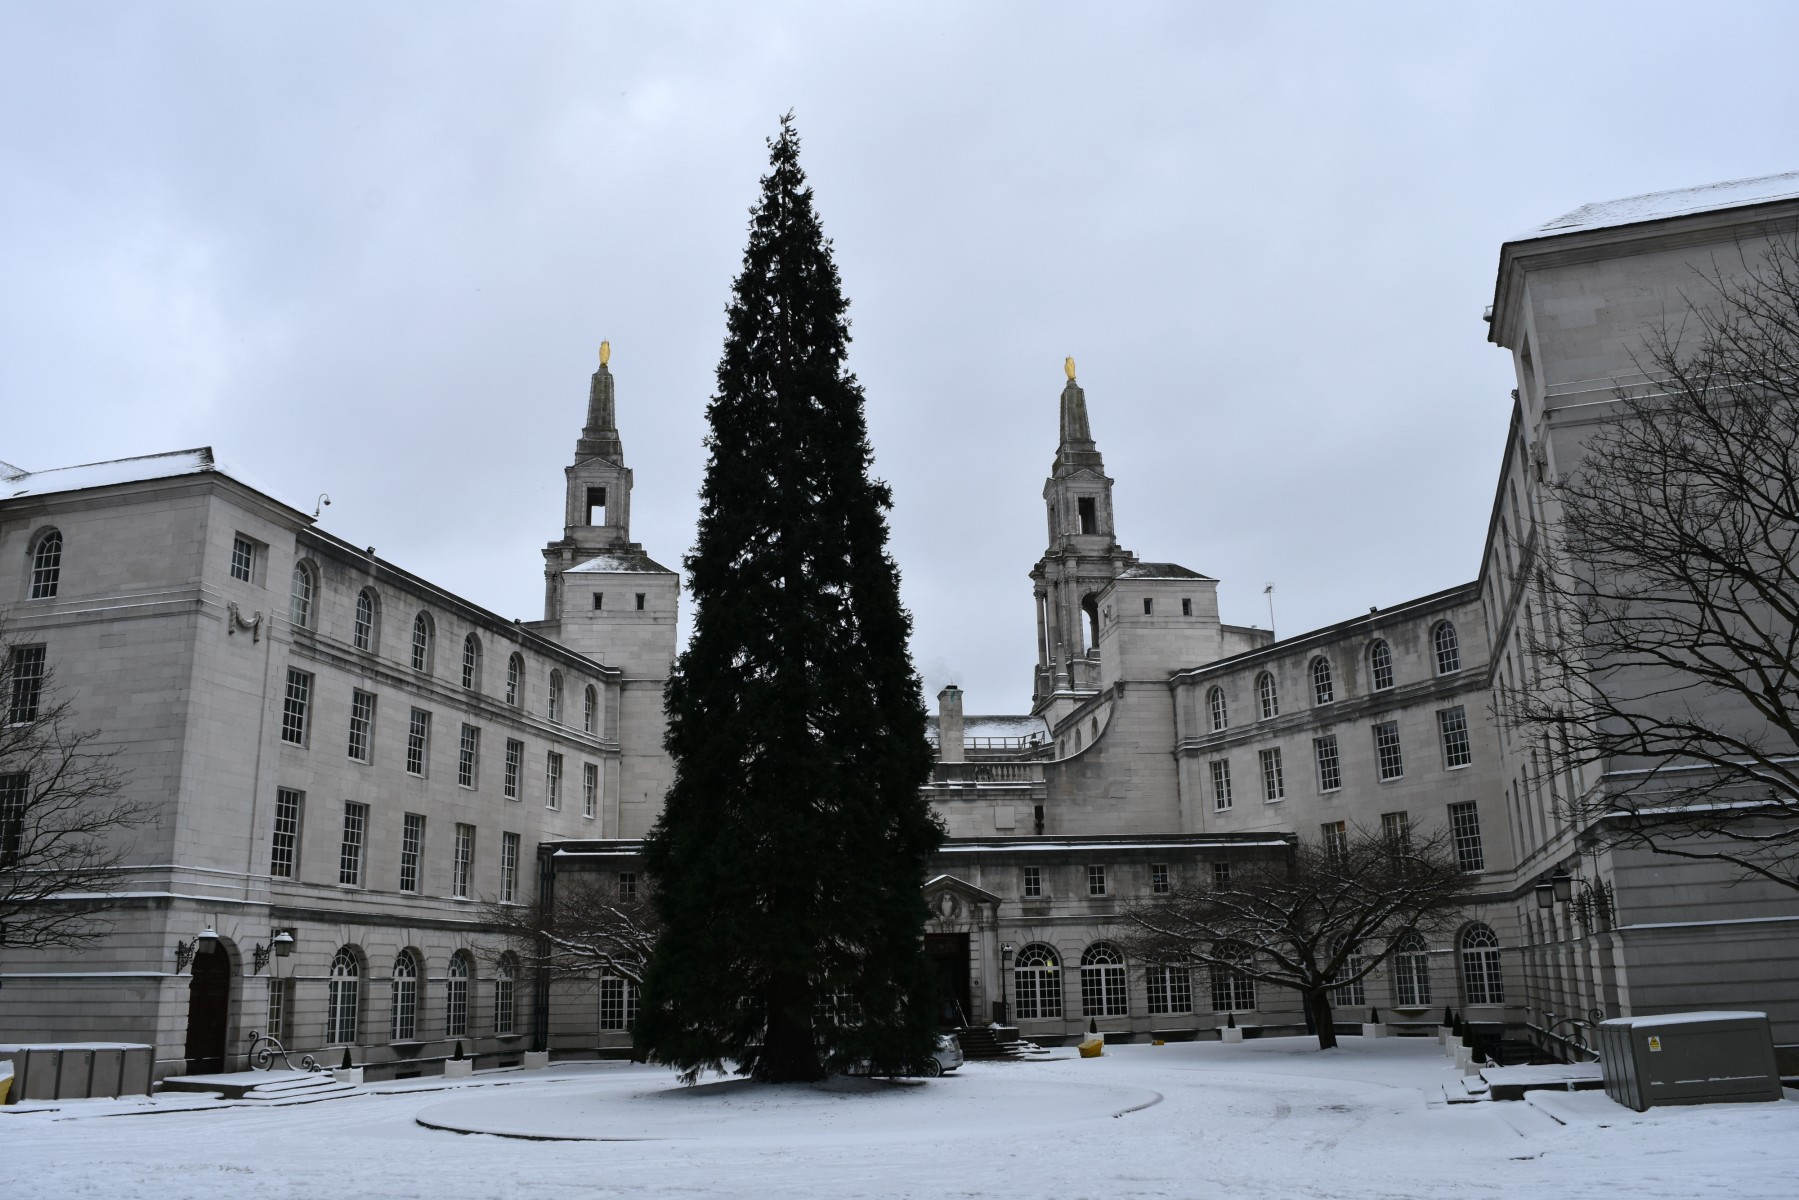 Leeds Civic Hall Snowy 2018